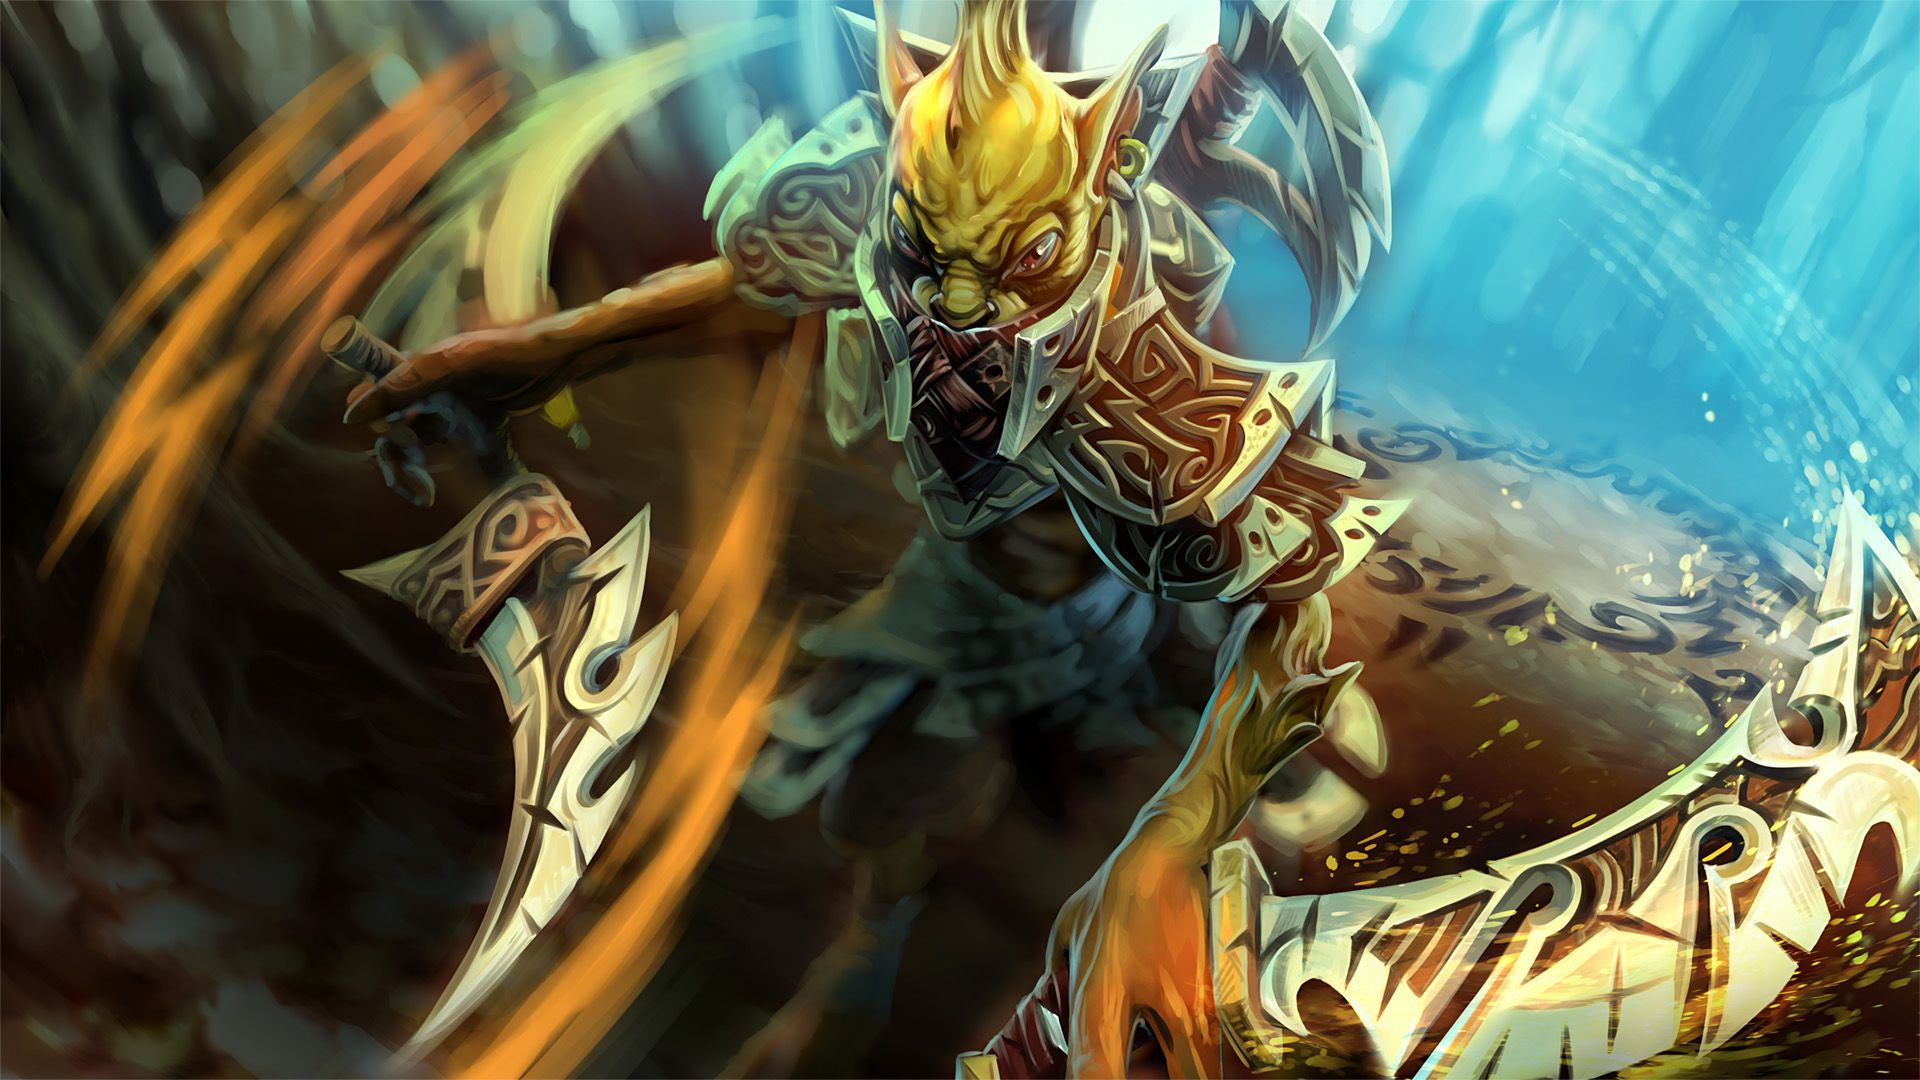 Bounty Hunter Hunty Bounter Wallpaper Dota 2 Hd Wallpapers Dota 2 Heroes Runes